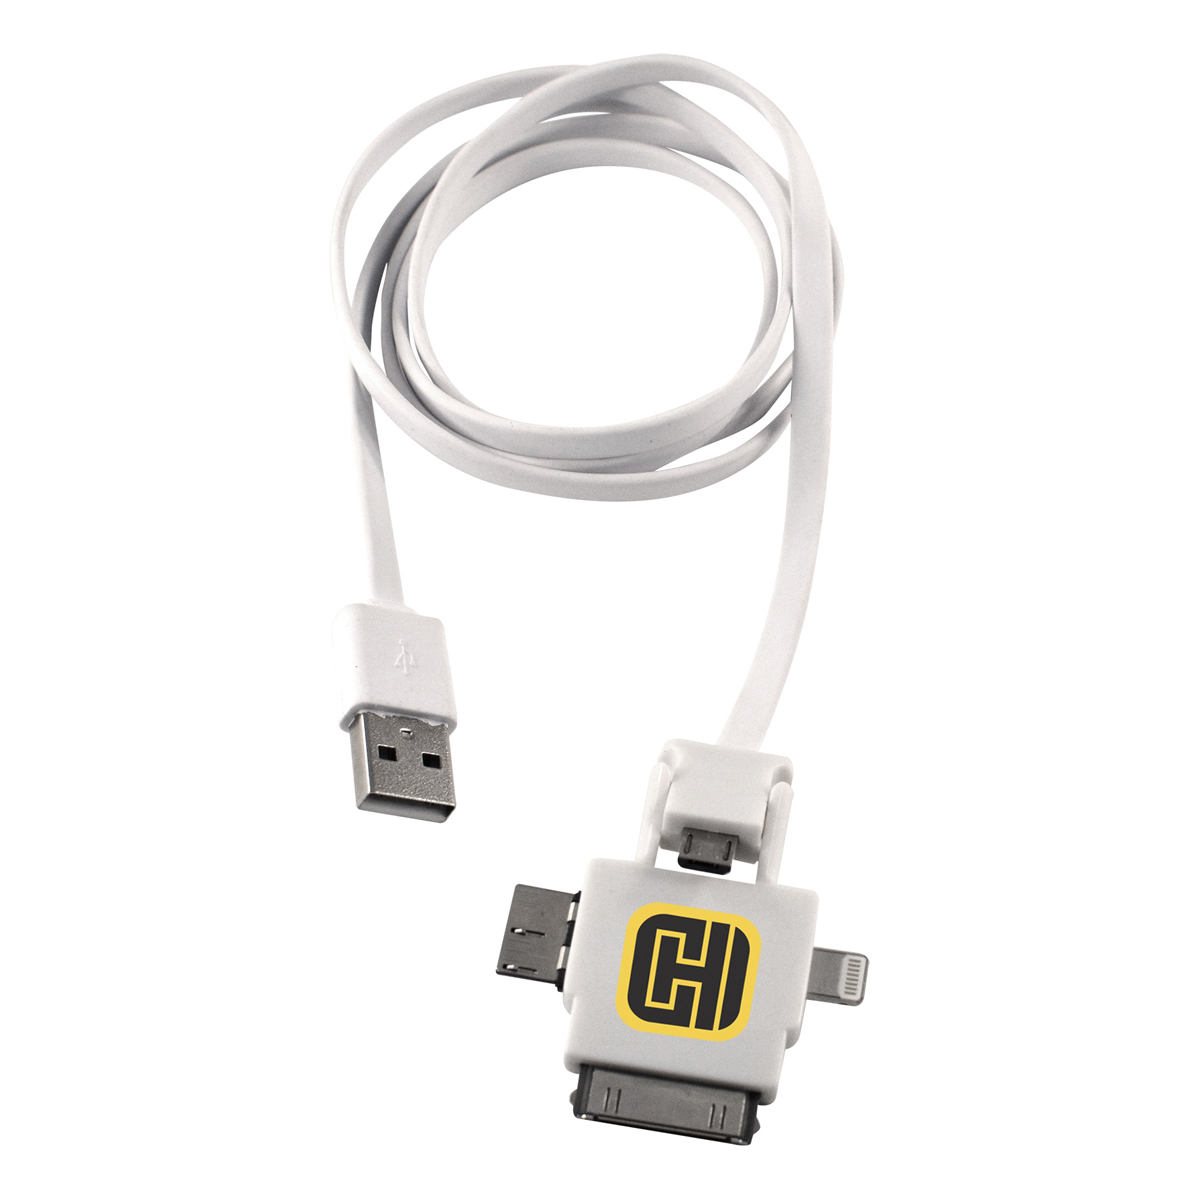 4 in 1 Cable Charger (NP111_PB)